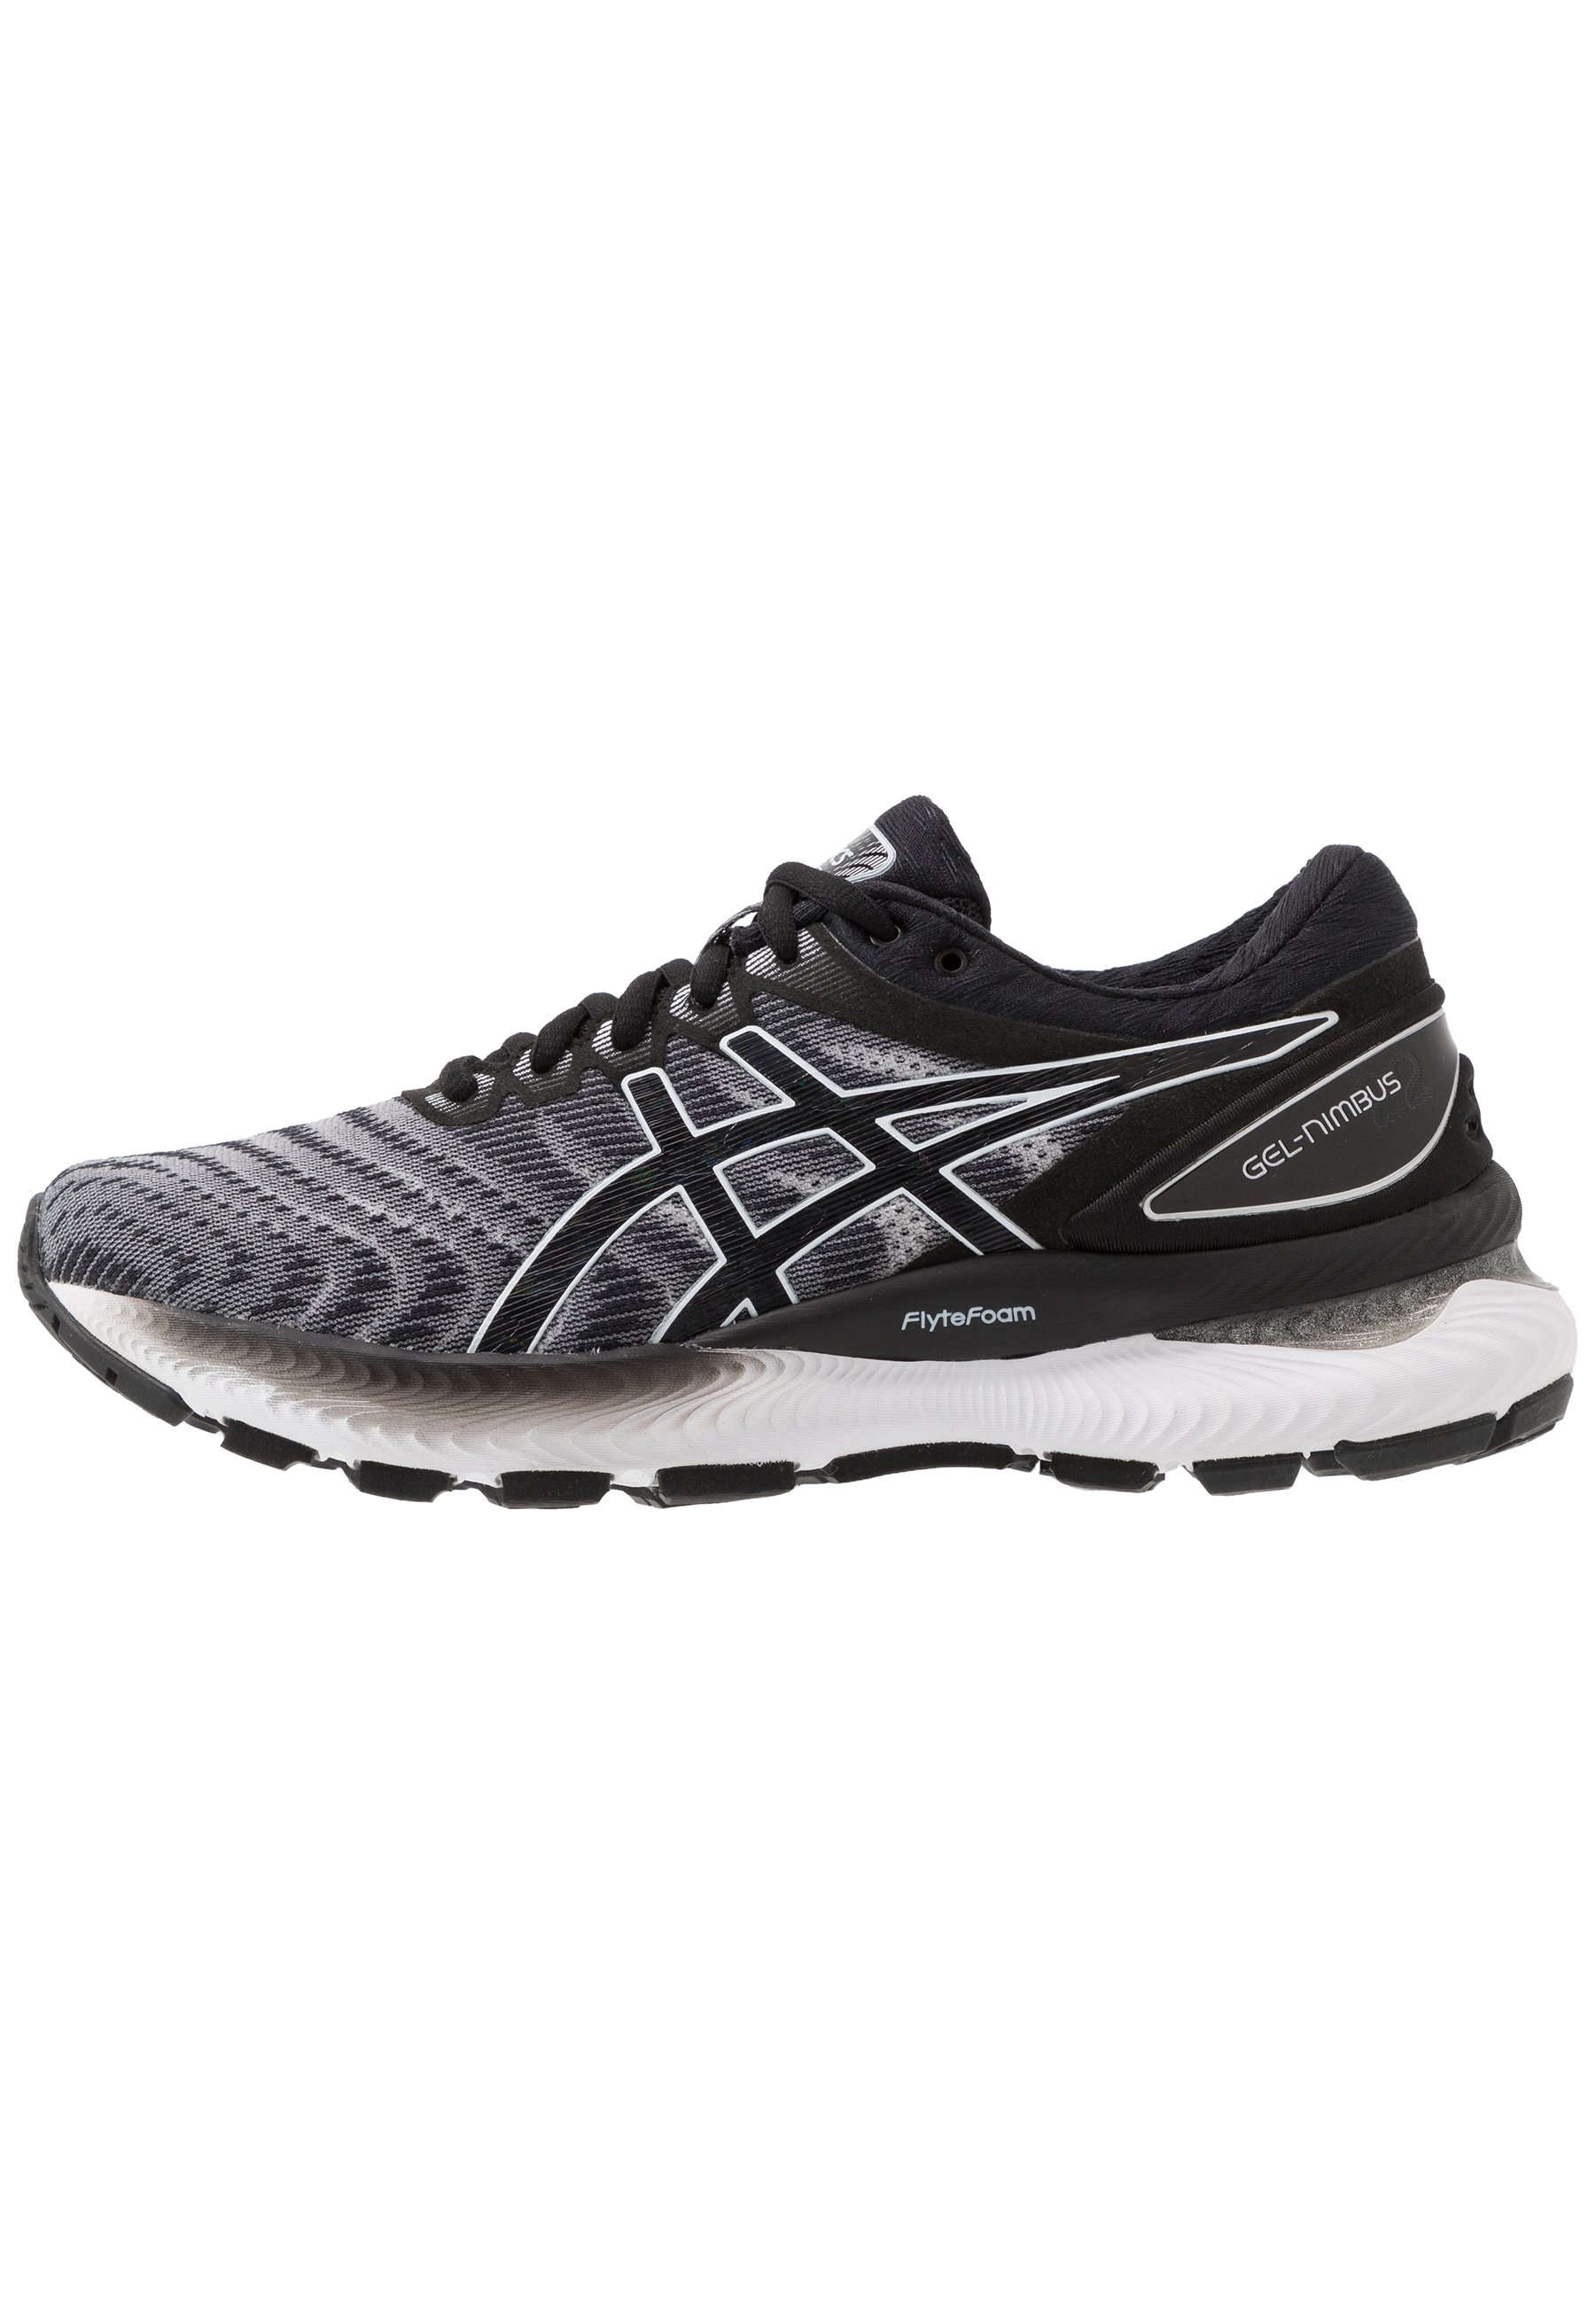 GEL NIMBUS 22 Scarpe running neutre whiteblack